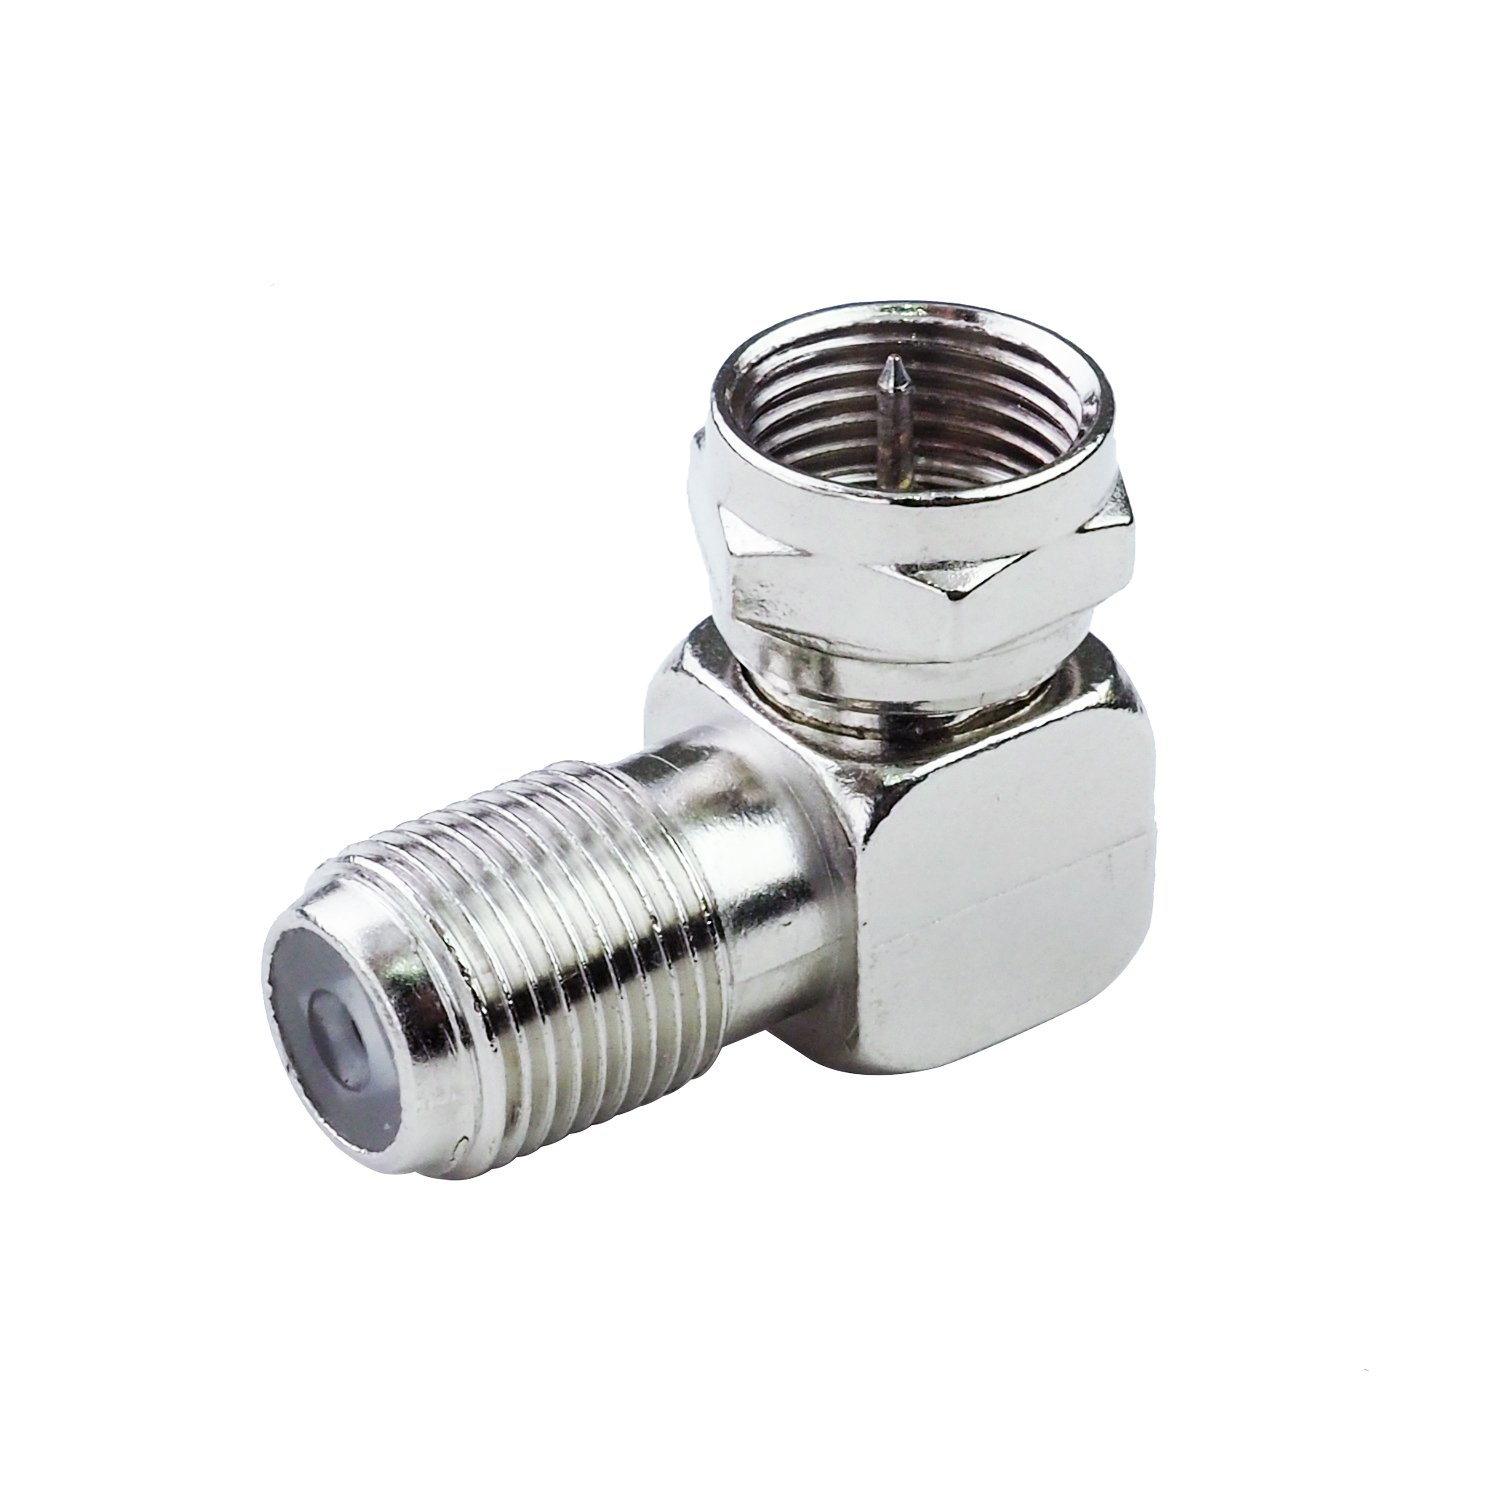 LINKOMM (10 Pack) Multimedia F-Type Female to Male Right Angle RG6 Coaxial Adapter Connector Coupler, Metal